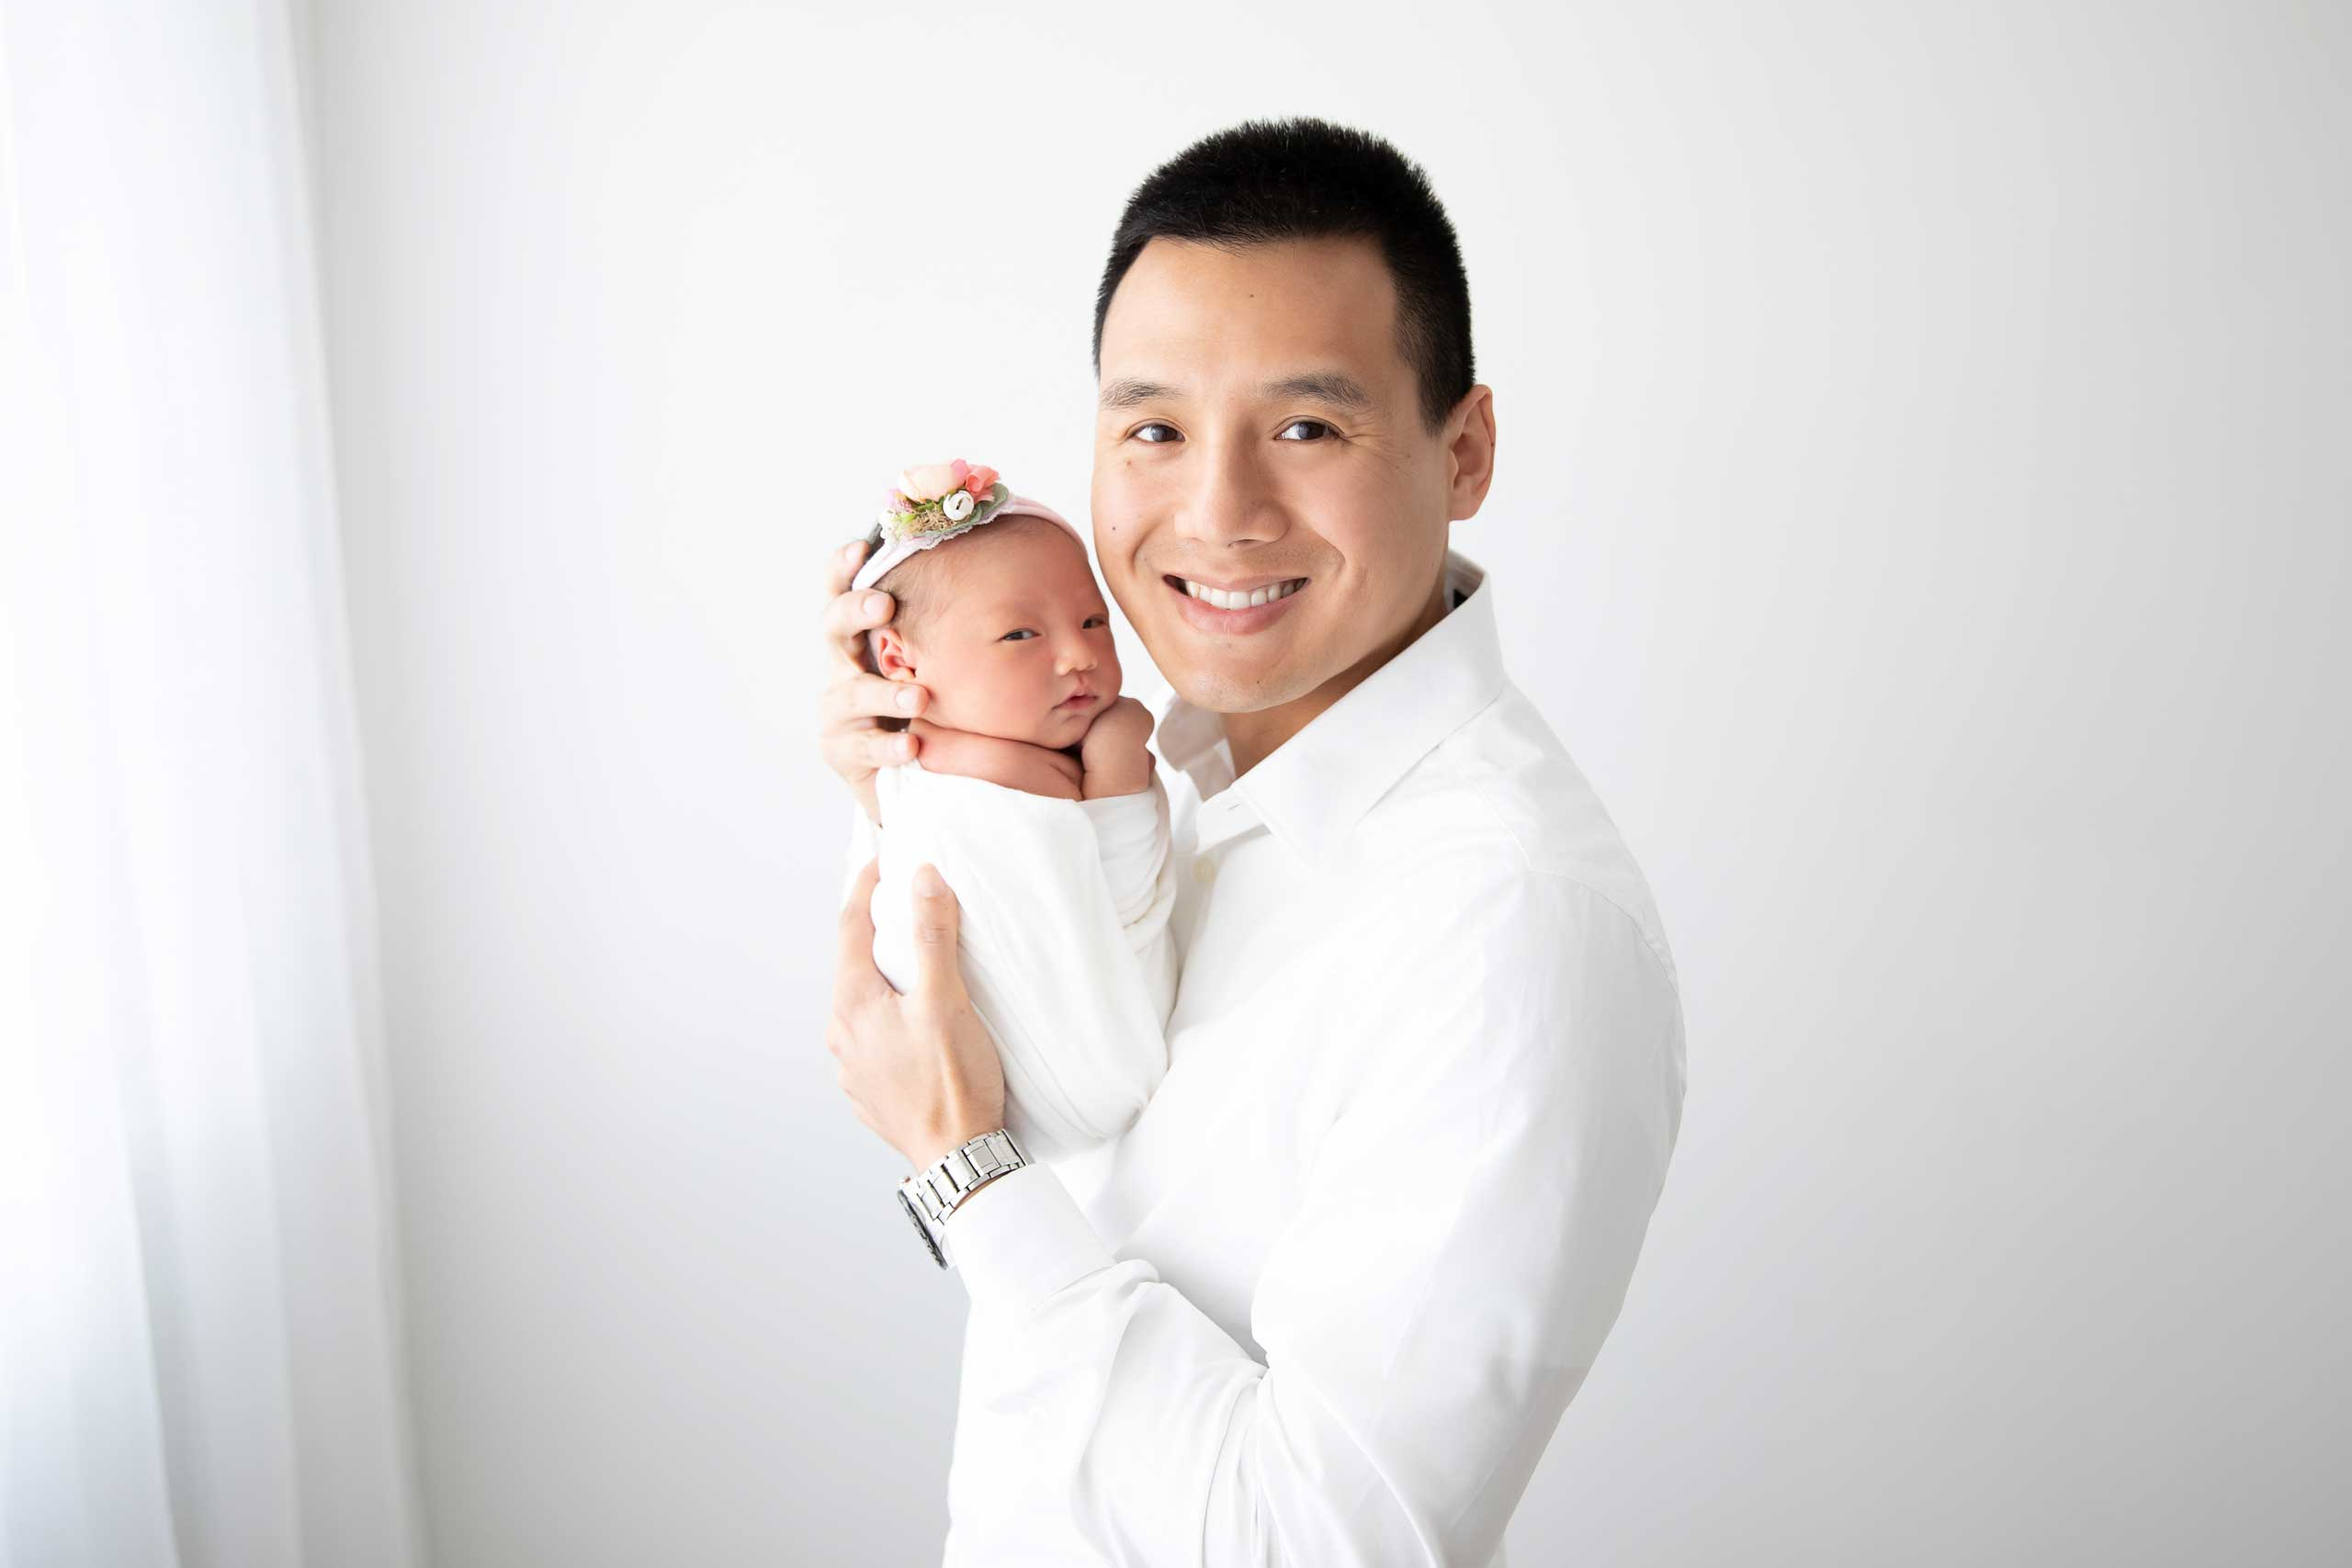 baby and daddy photograph taken in Los Angeles by Ramina Magid Photography